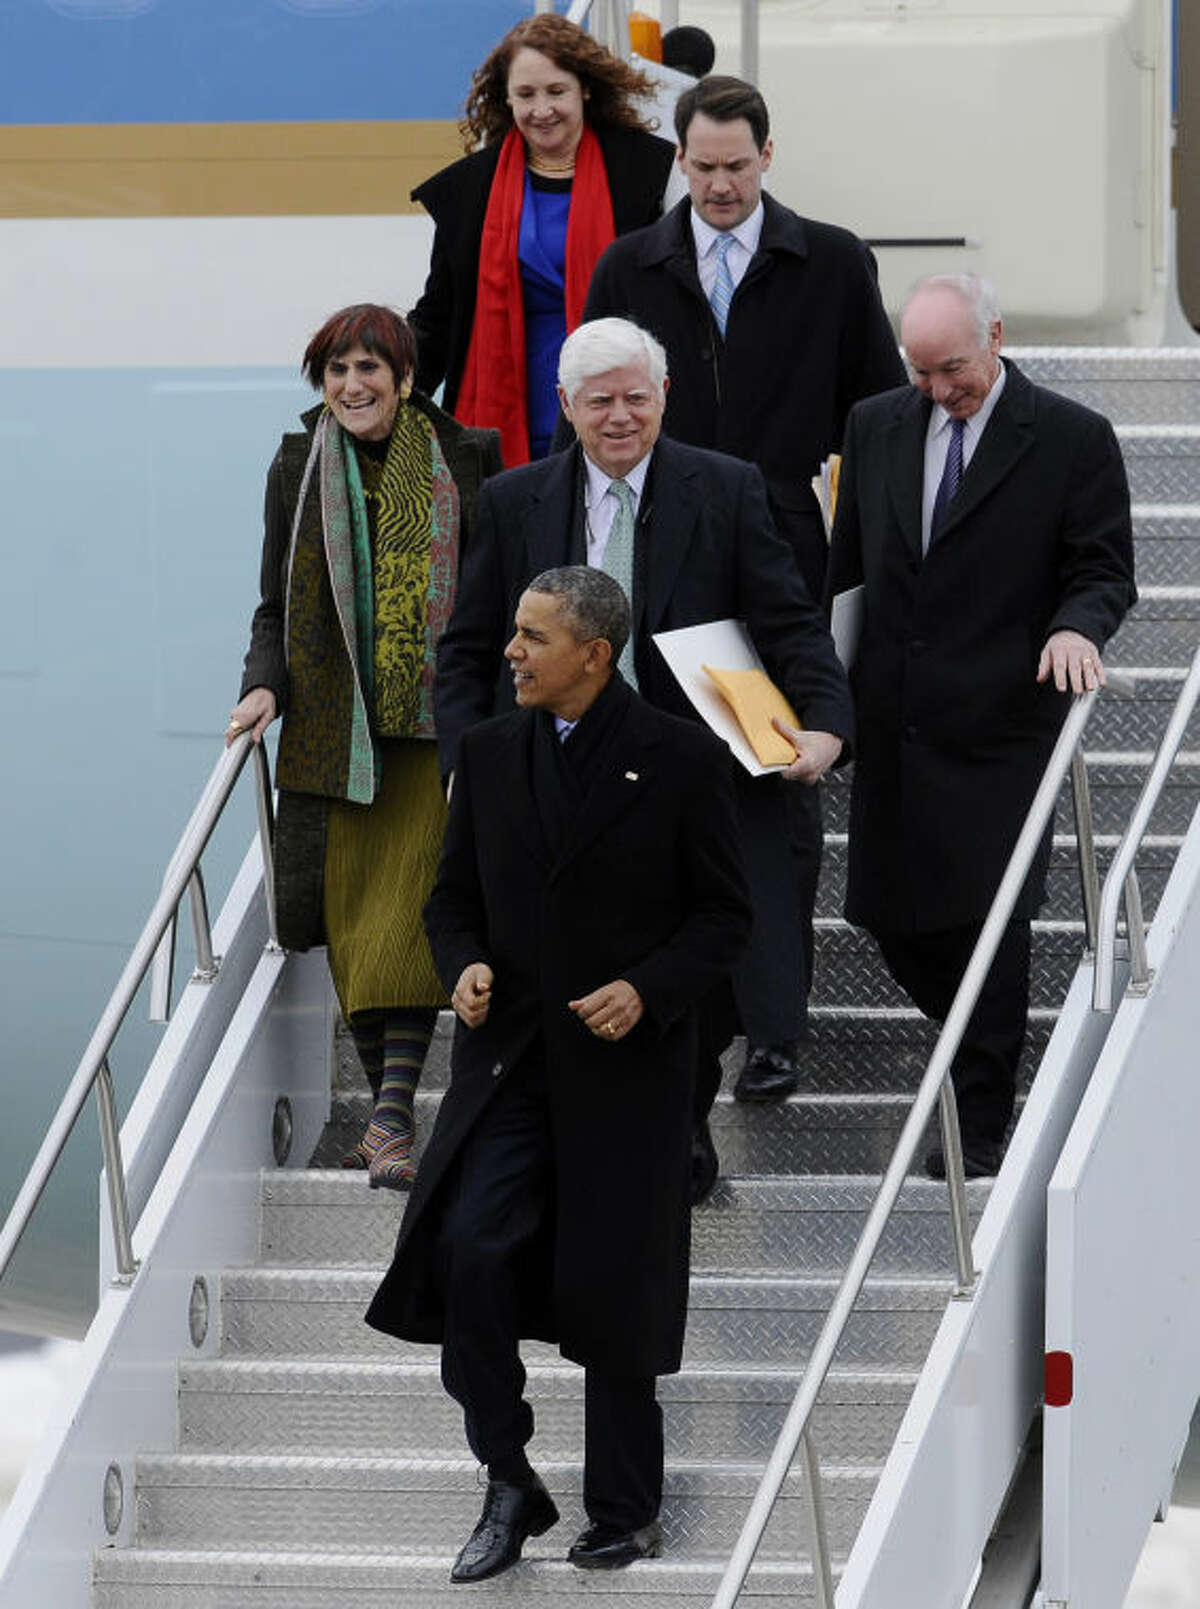 President Barack Obama, followed by Rep. John Larson, D-Conn., Rep. Rosa DeLauro, D-Conn., Rep. Joe Courtney, D-Conn., Rep. Jim Himes, D-Conn., and Rep. Elizabeth Esty, D-Conn., arrive on Air Force One at Bradley Air National Guard Base, Wednesday, March 5, 2014, in East Granby, Conn. Obama is in Connecticut to talk about increasing the federal minimum wage. (AP Photo/Jessica Hill)